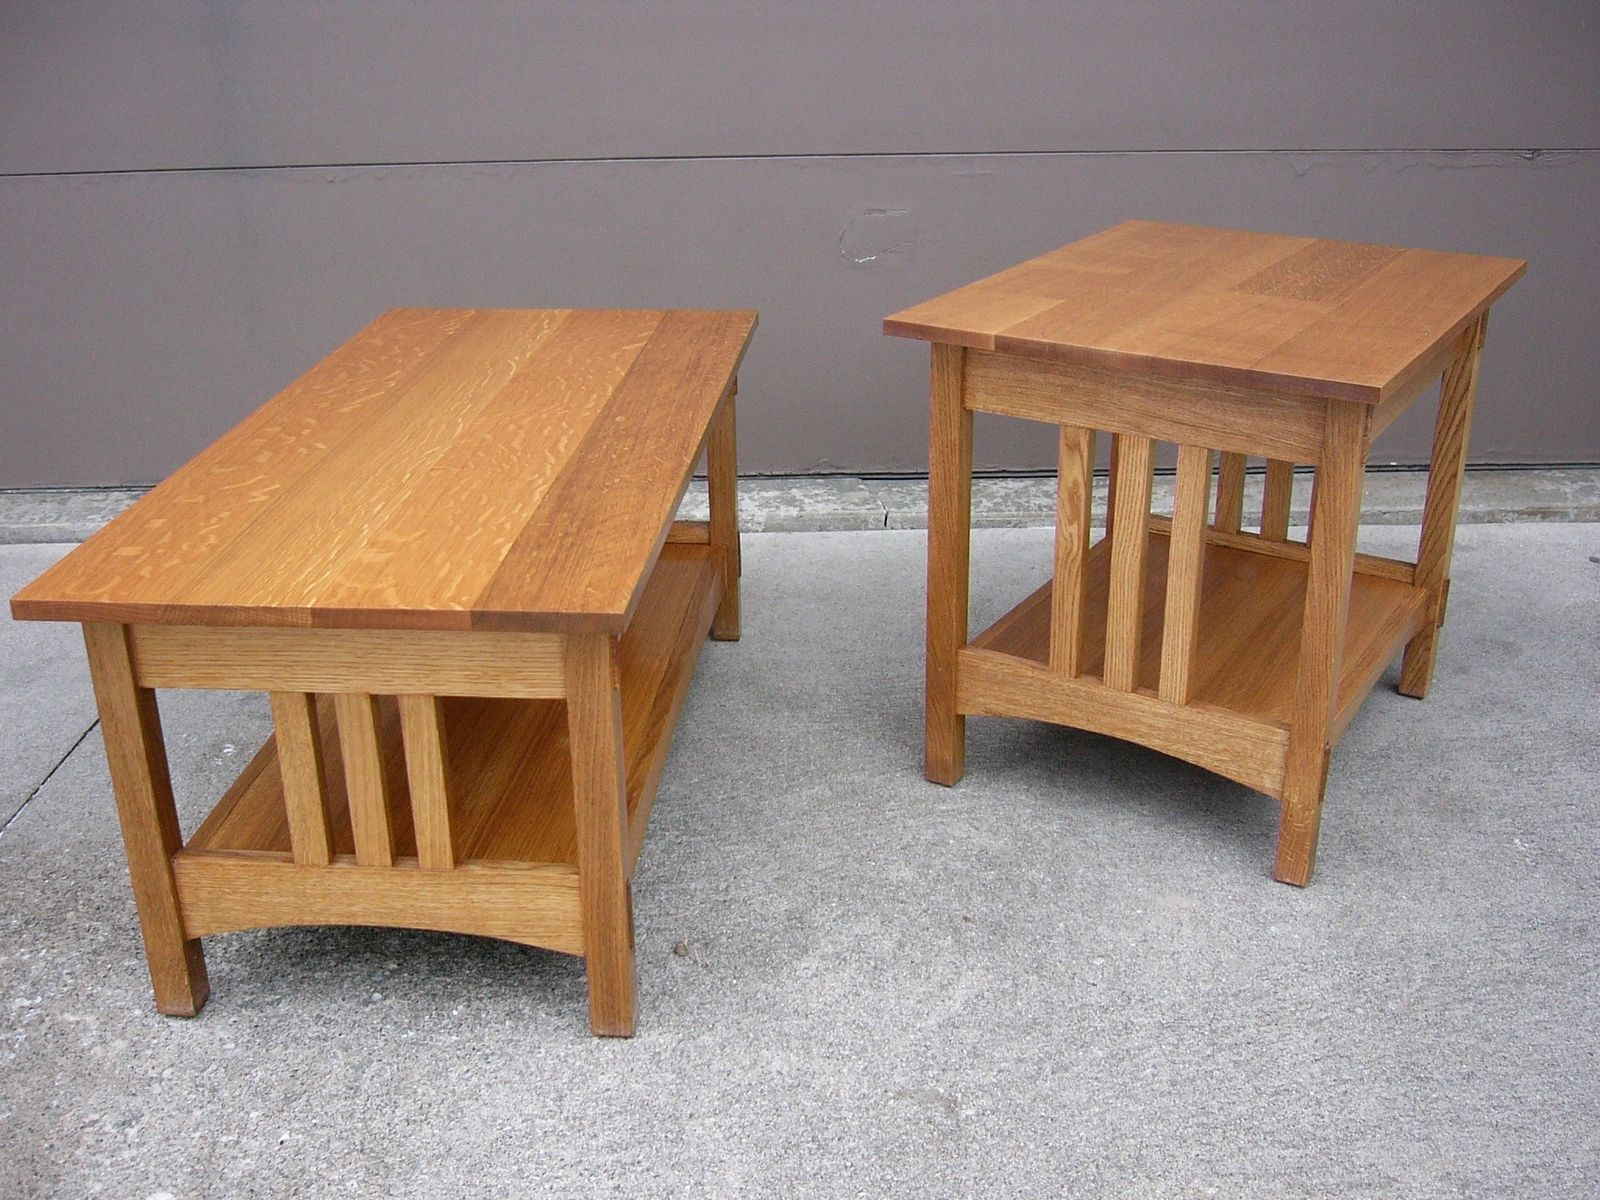 Handmade Quartersawn Oak Mission Style Coffee Table And End Table By Dave 39 S Quality Furniture